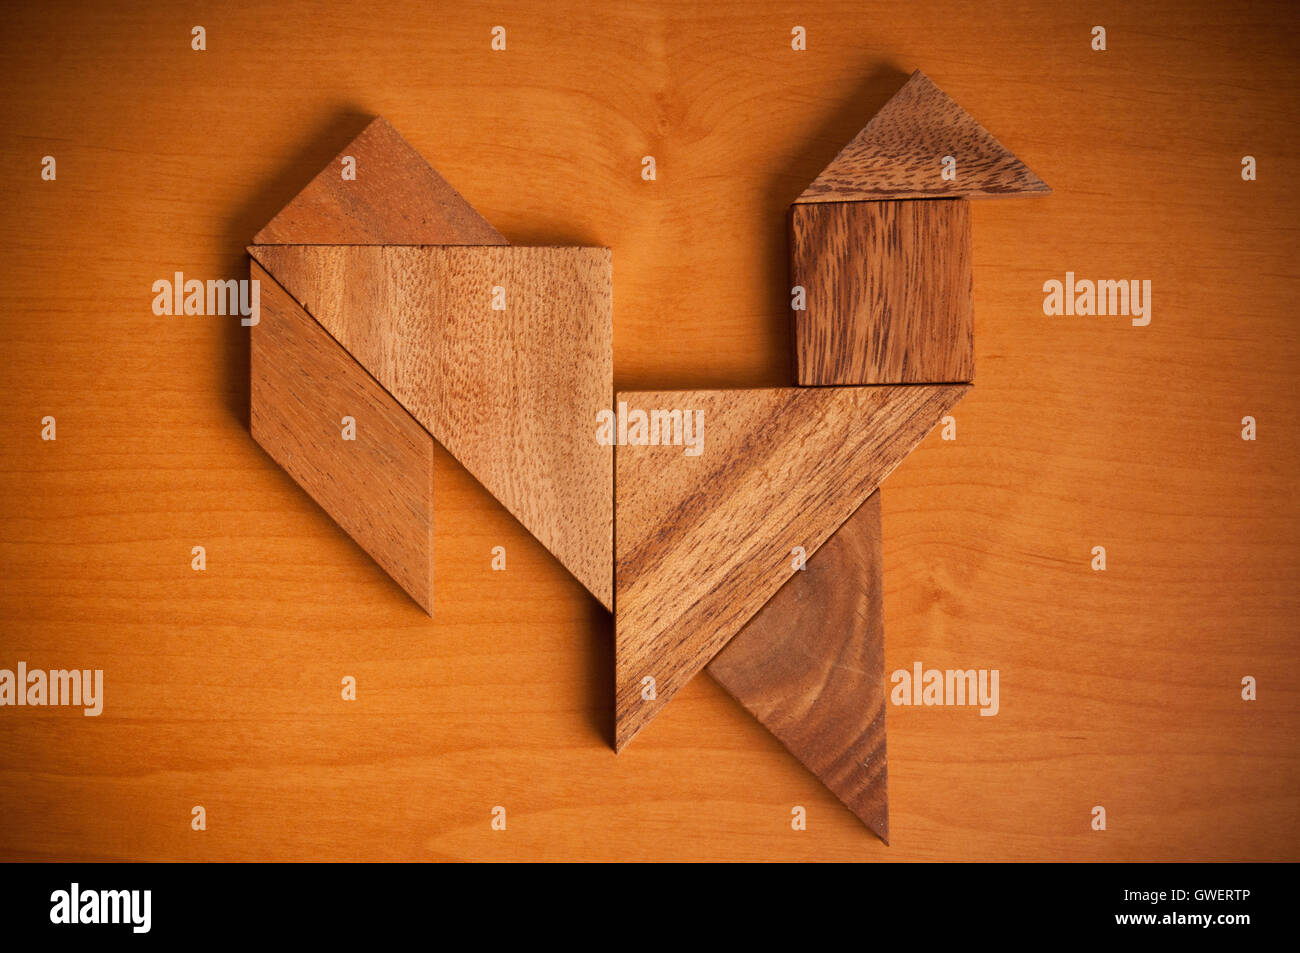 Tangram figure rooster - Stock Image